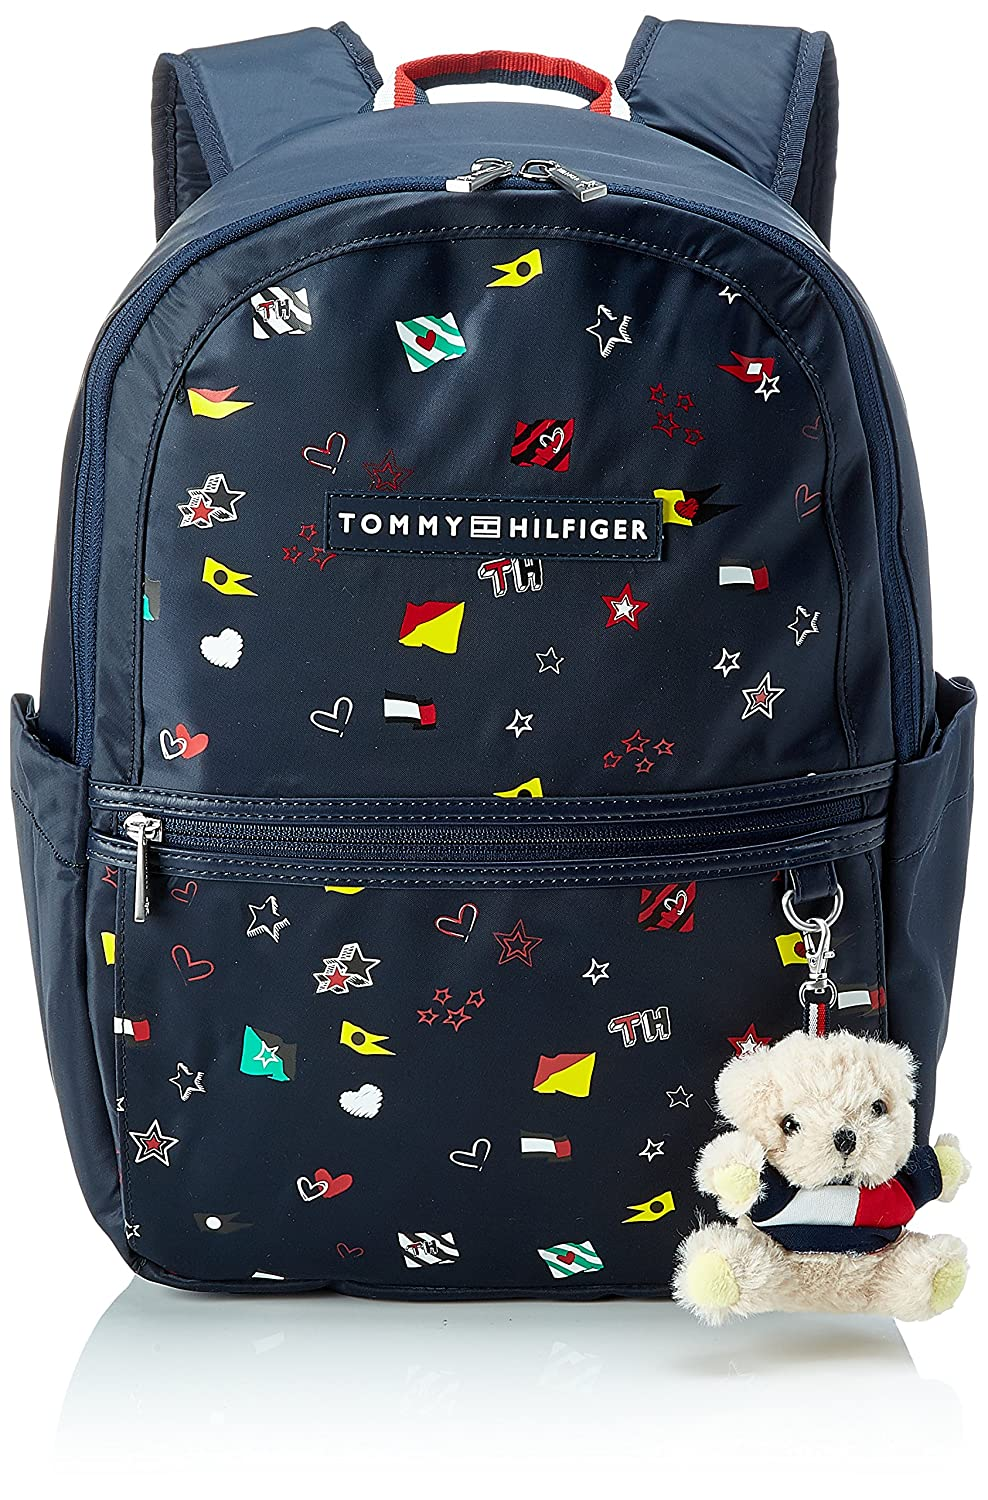 Tommy Hilfiger - Corporate Girl Backpack, Mochilas Niñas, Blau (Tommy Navy), 13x39x28 cm (B x H T): Amazon.es: Zapatos y complementos